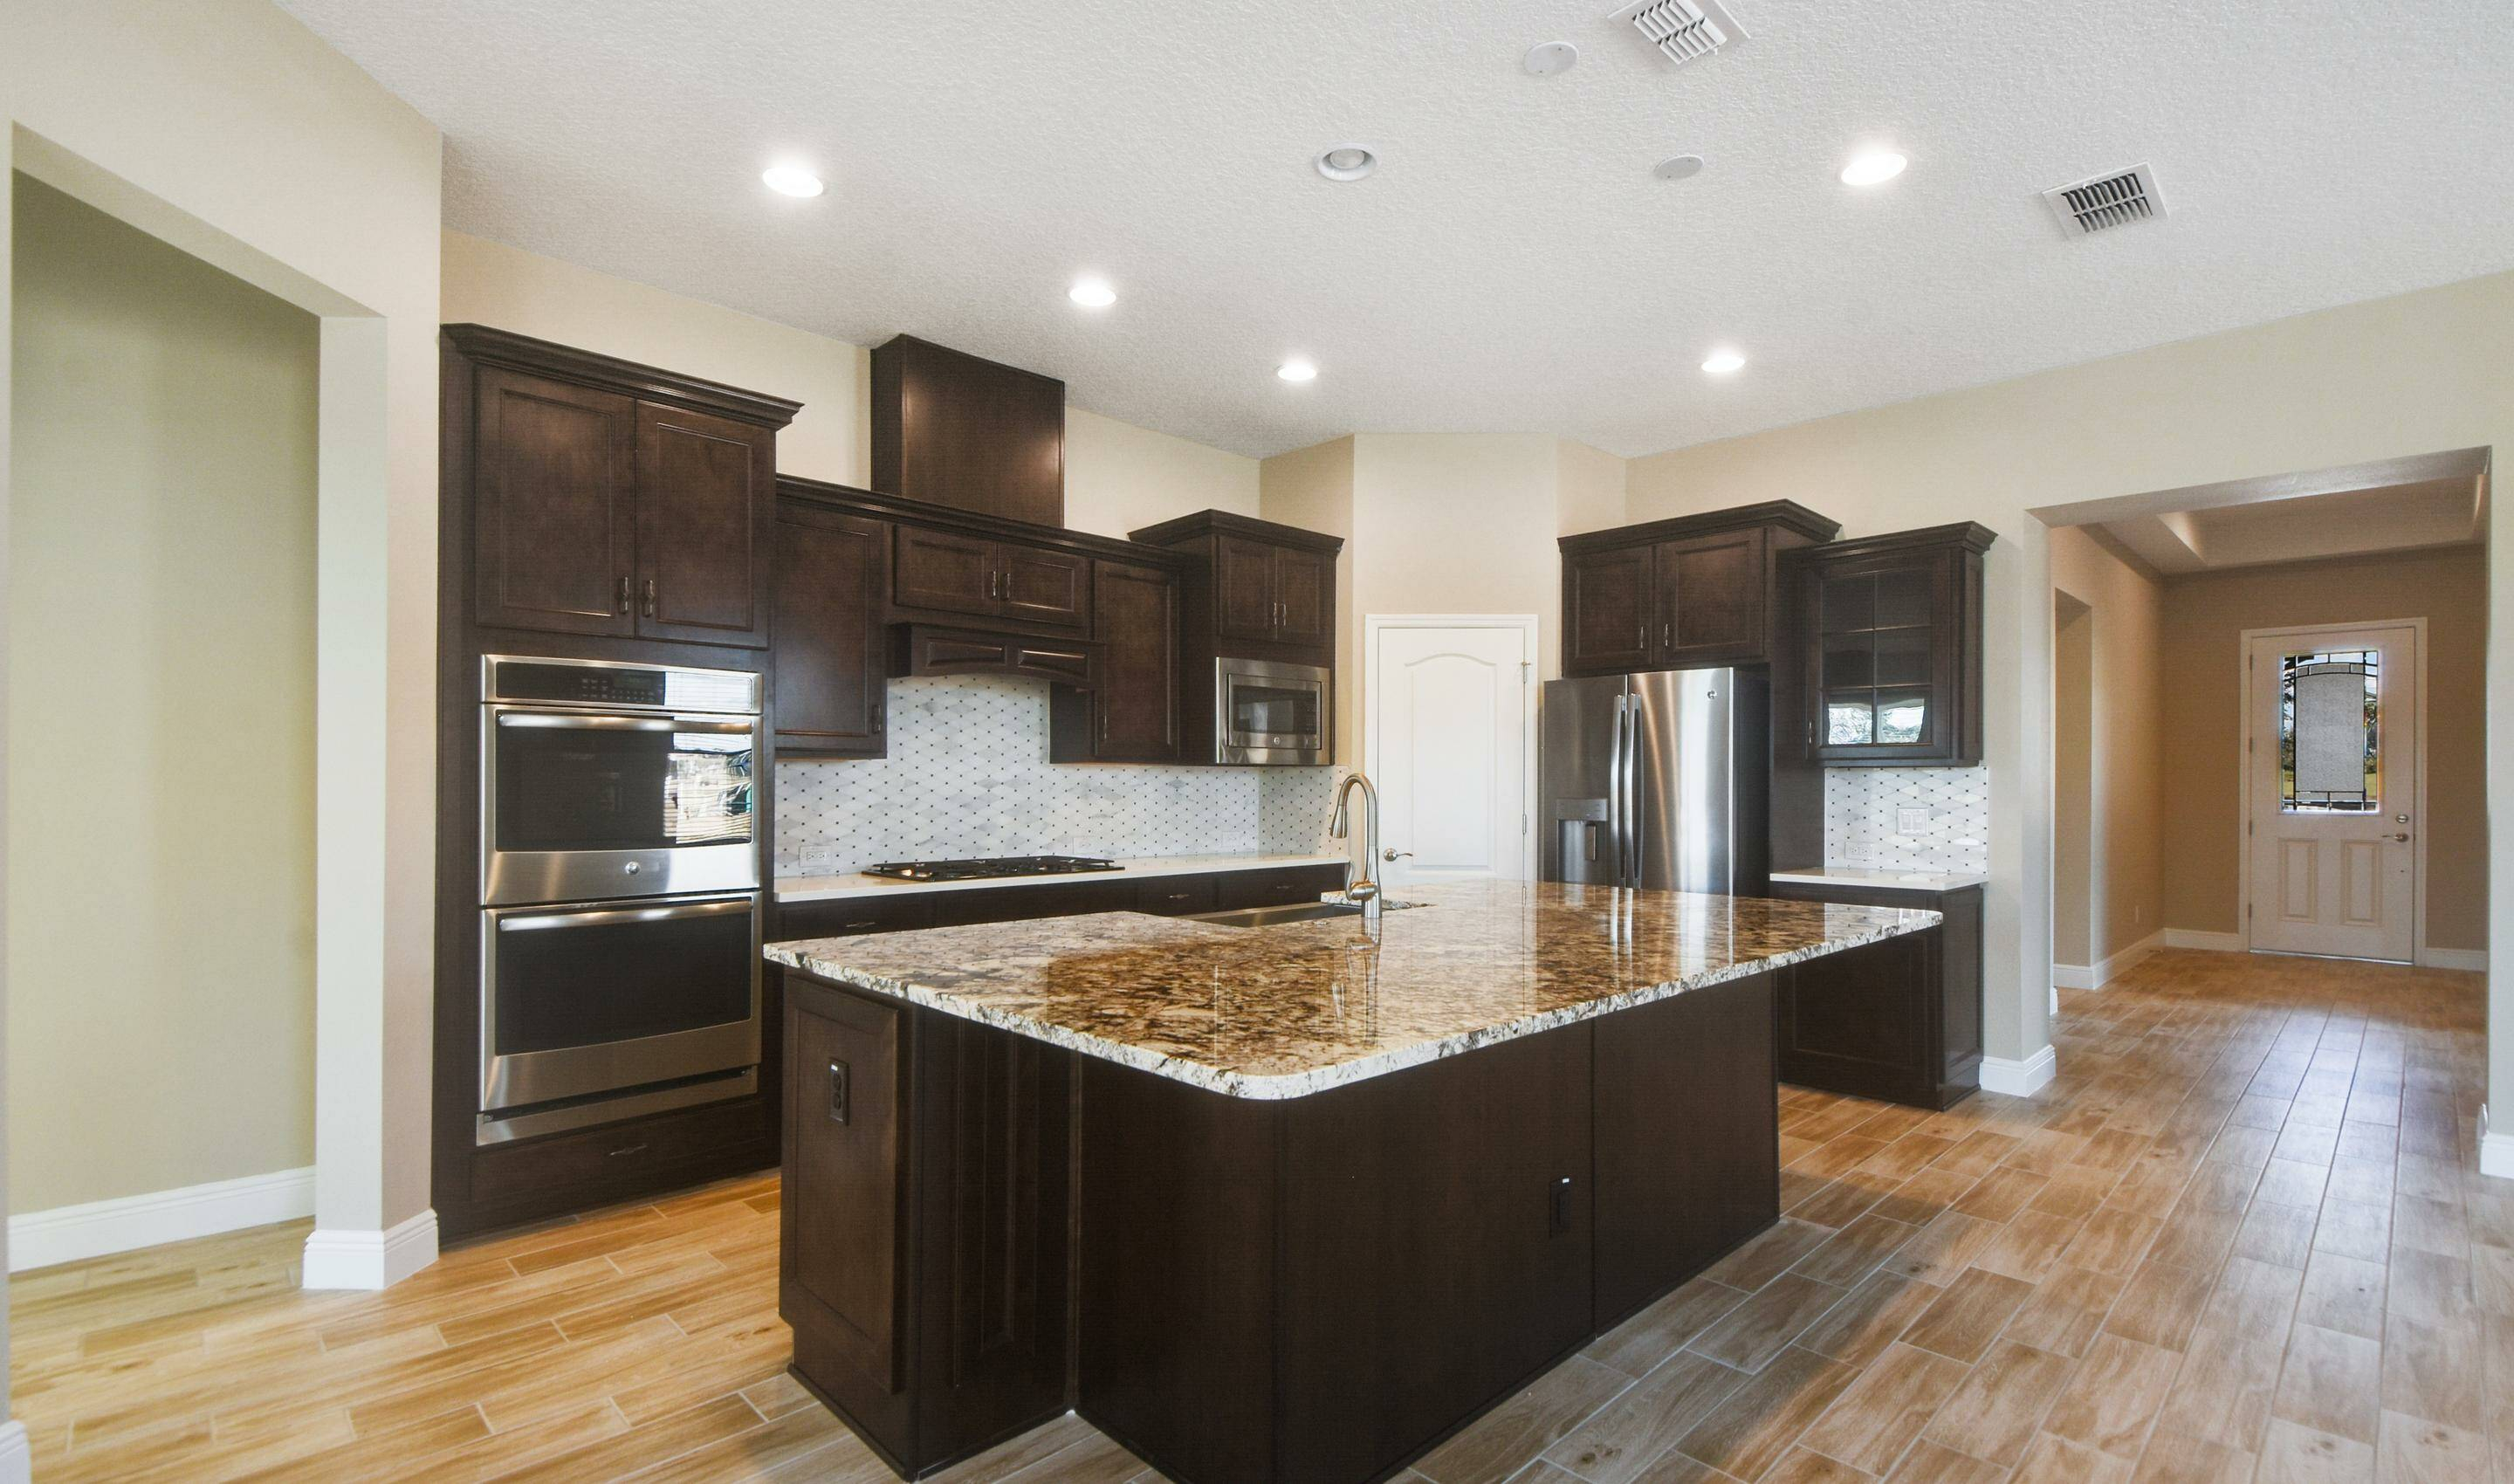 gourmet kitchen in the Barbados in Four Seasons at Orlando new homes in Orlando Florida